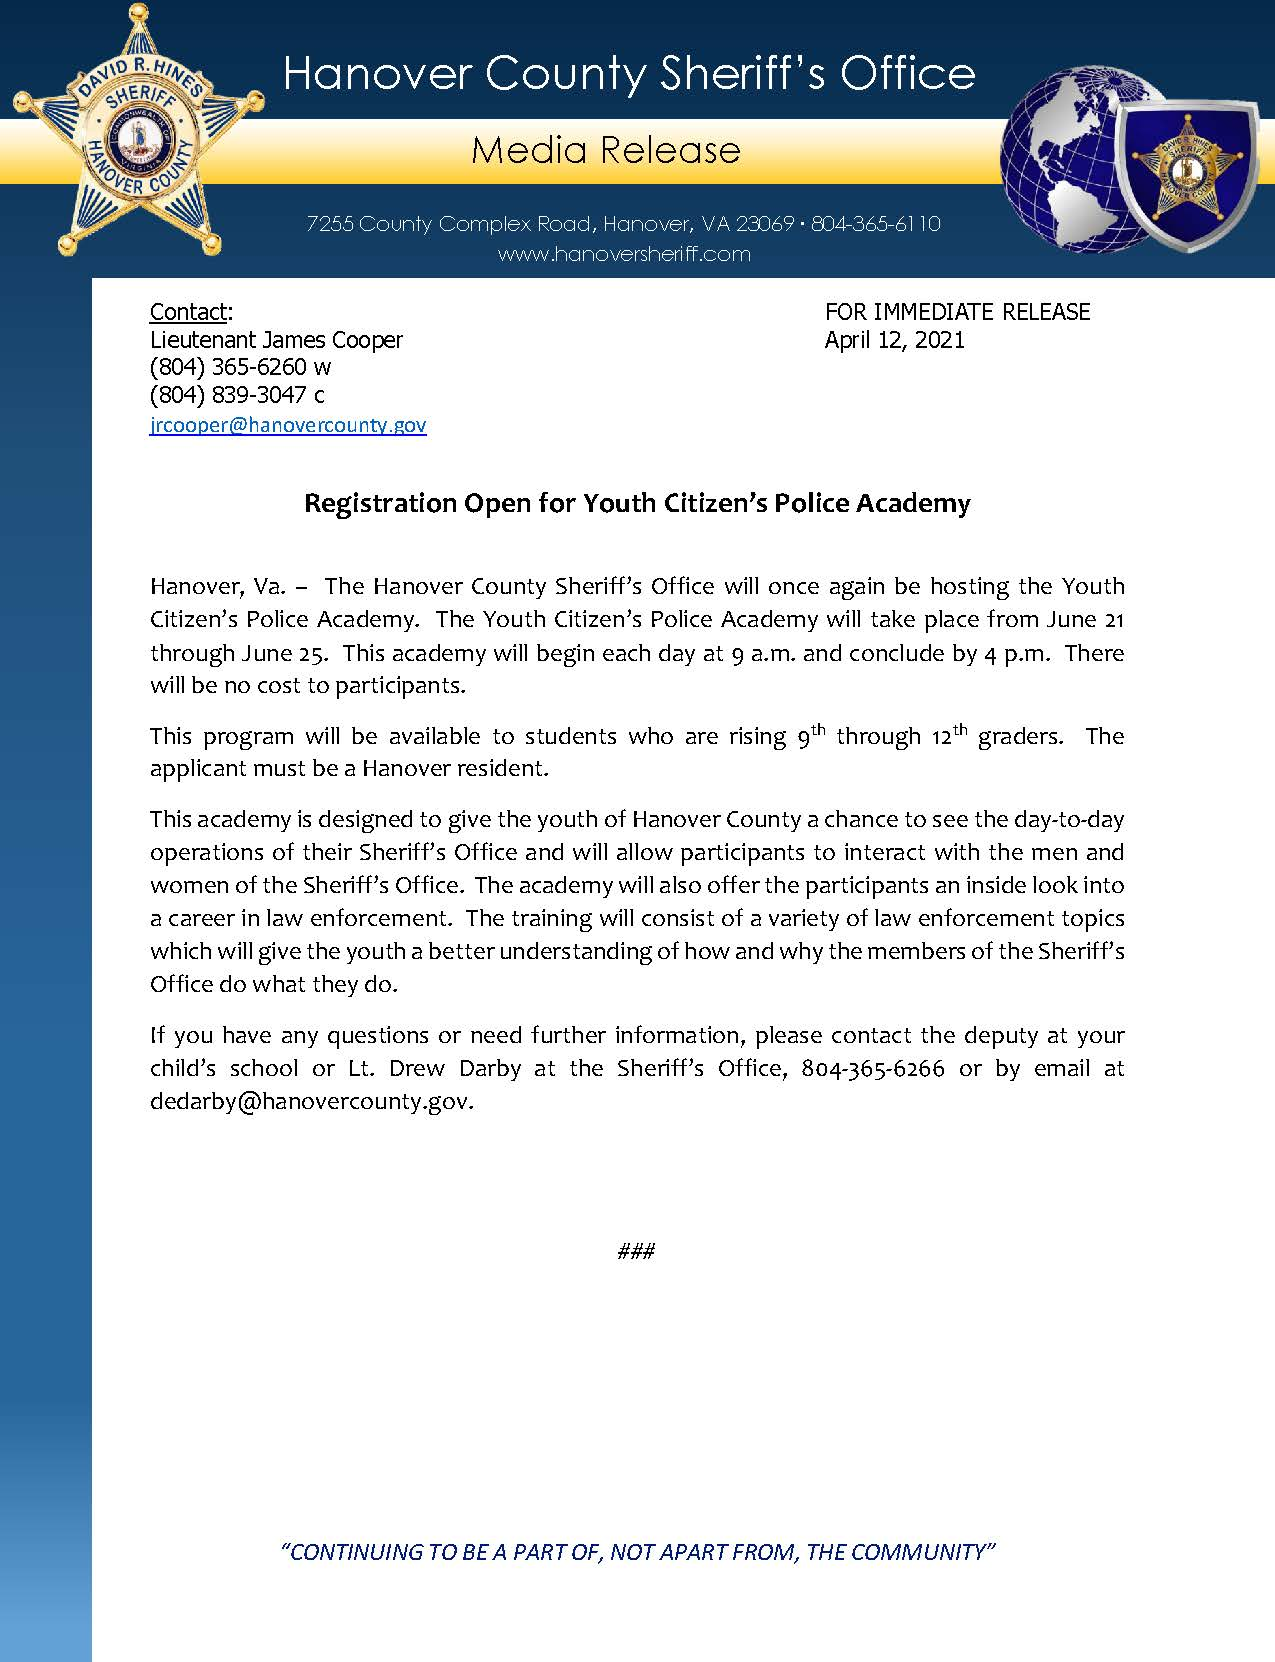 HCSO Media Release - Registration Open for Youth Citizens Police Academy 4.12.21